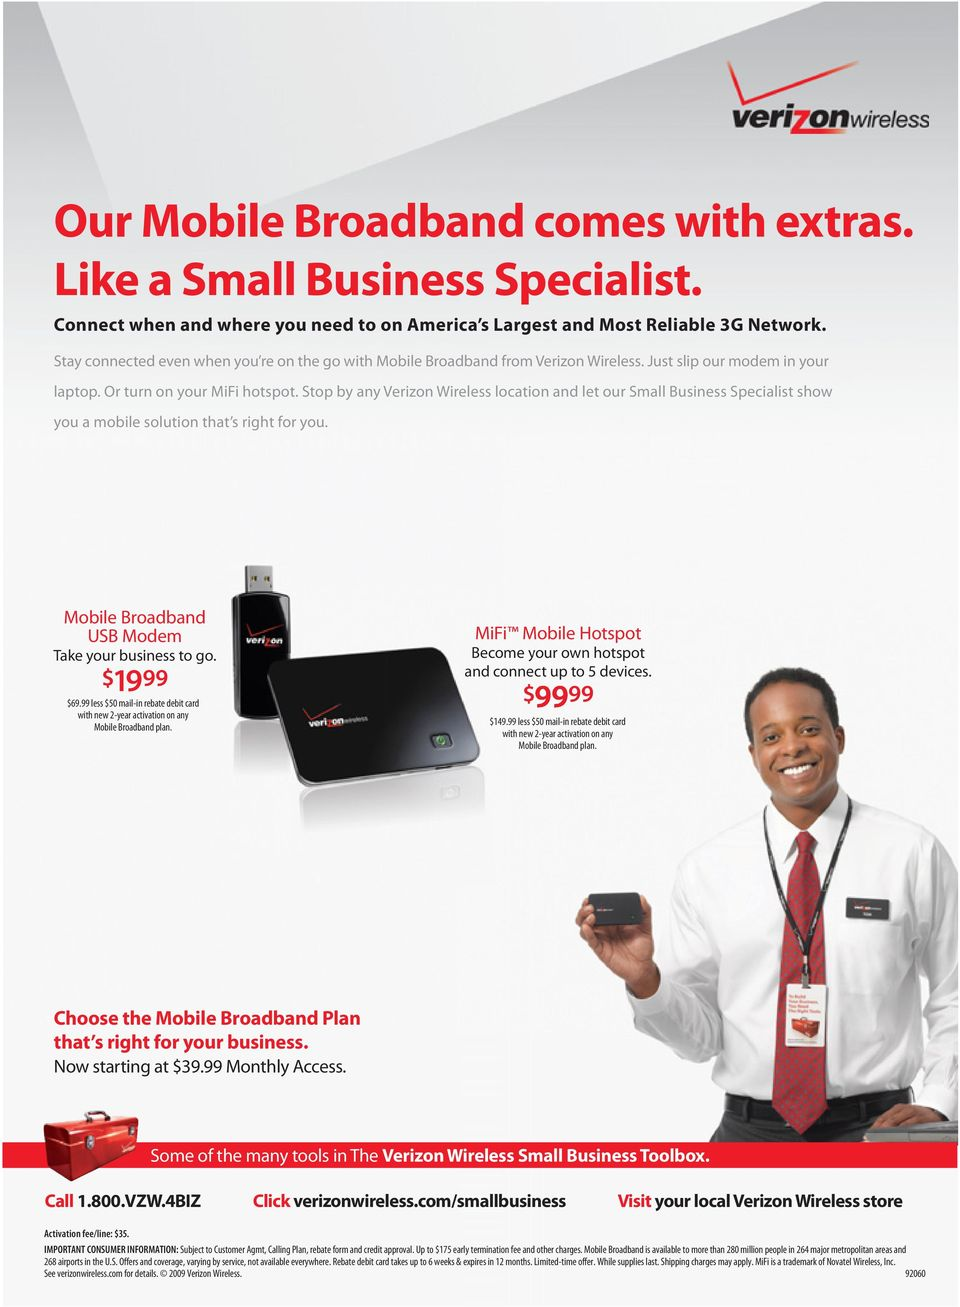 verizon wireless marketing plan There are two verizon wireless plans for mobile broadband (also known as broadbandaccess verizon mobile broadband) before march 2nd, 2008, the 5gb verizon wireless plan was marketed as unlimited interestingly enough, within their terms of service, they stated.